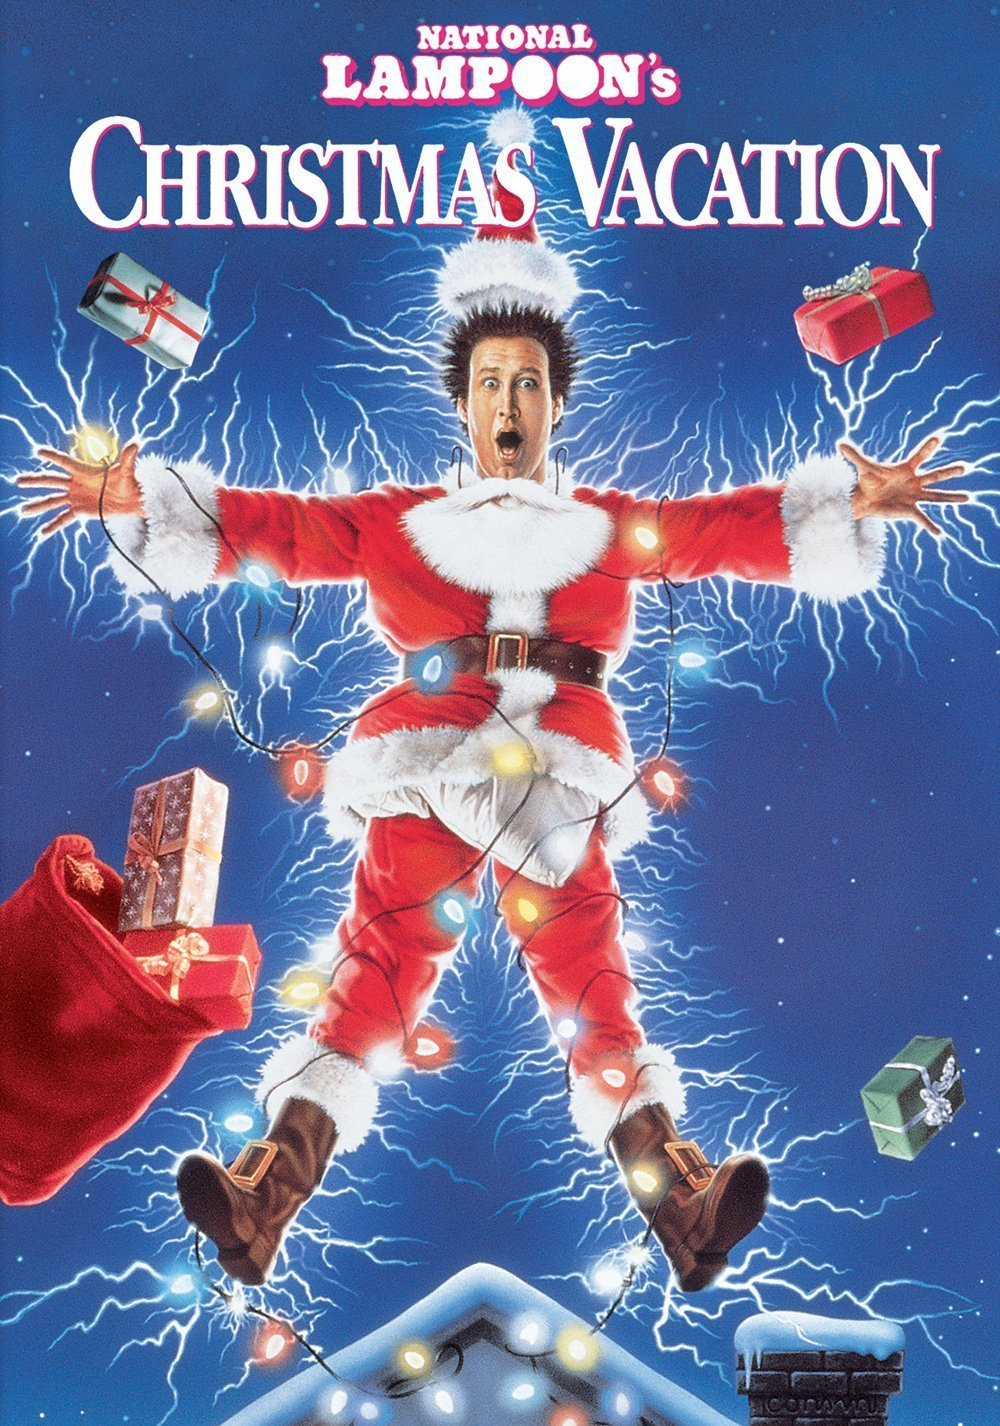 poster le sapin a les boules national lampoon s christmas vacation. Black Bedroom Furniture Sets. Home Design Ideas